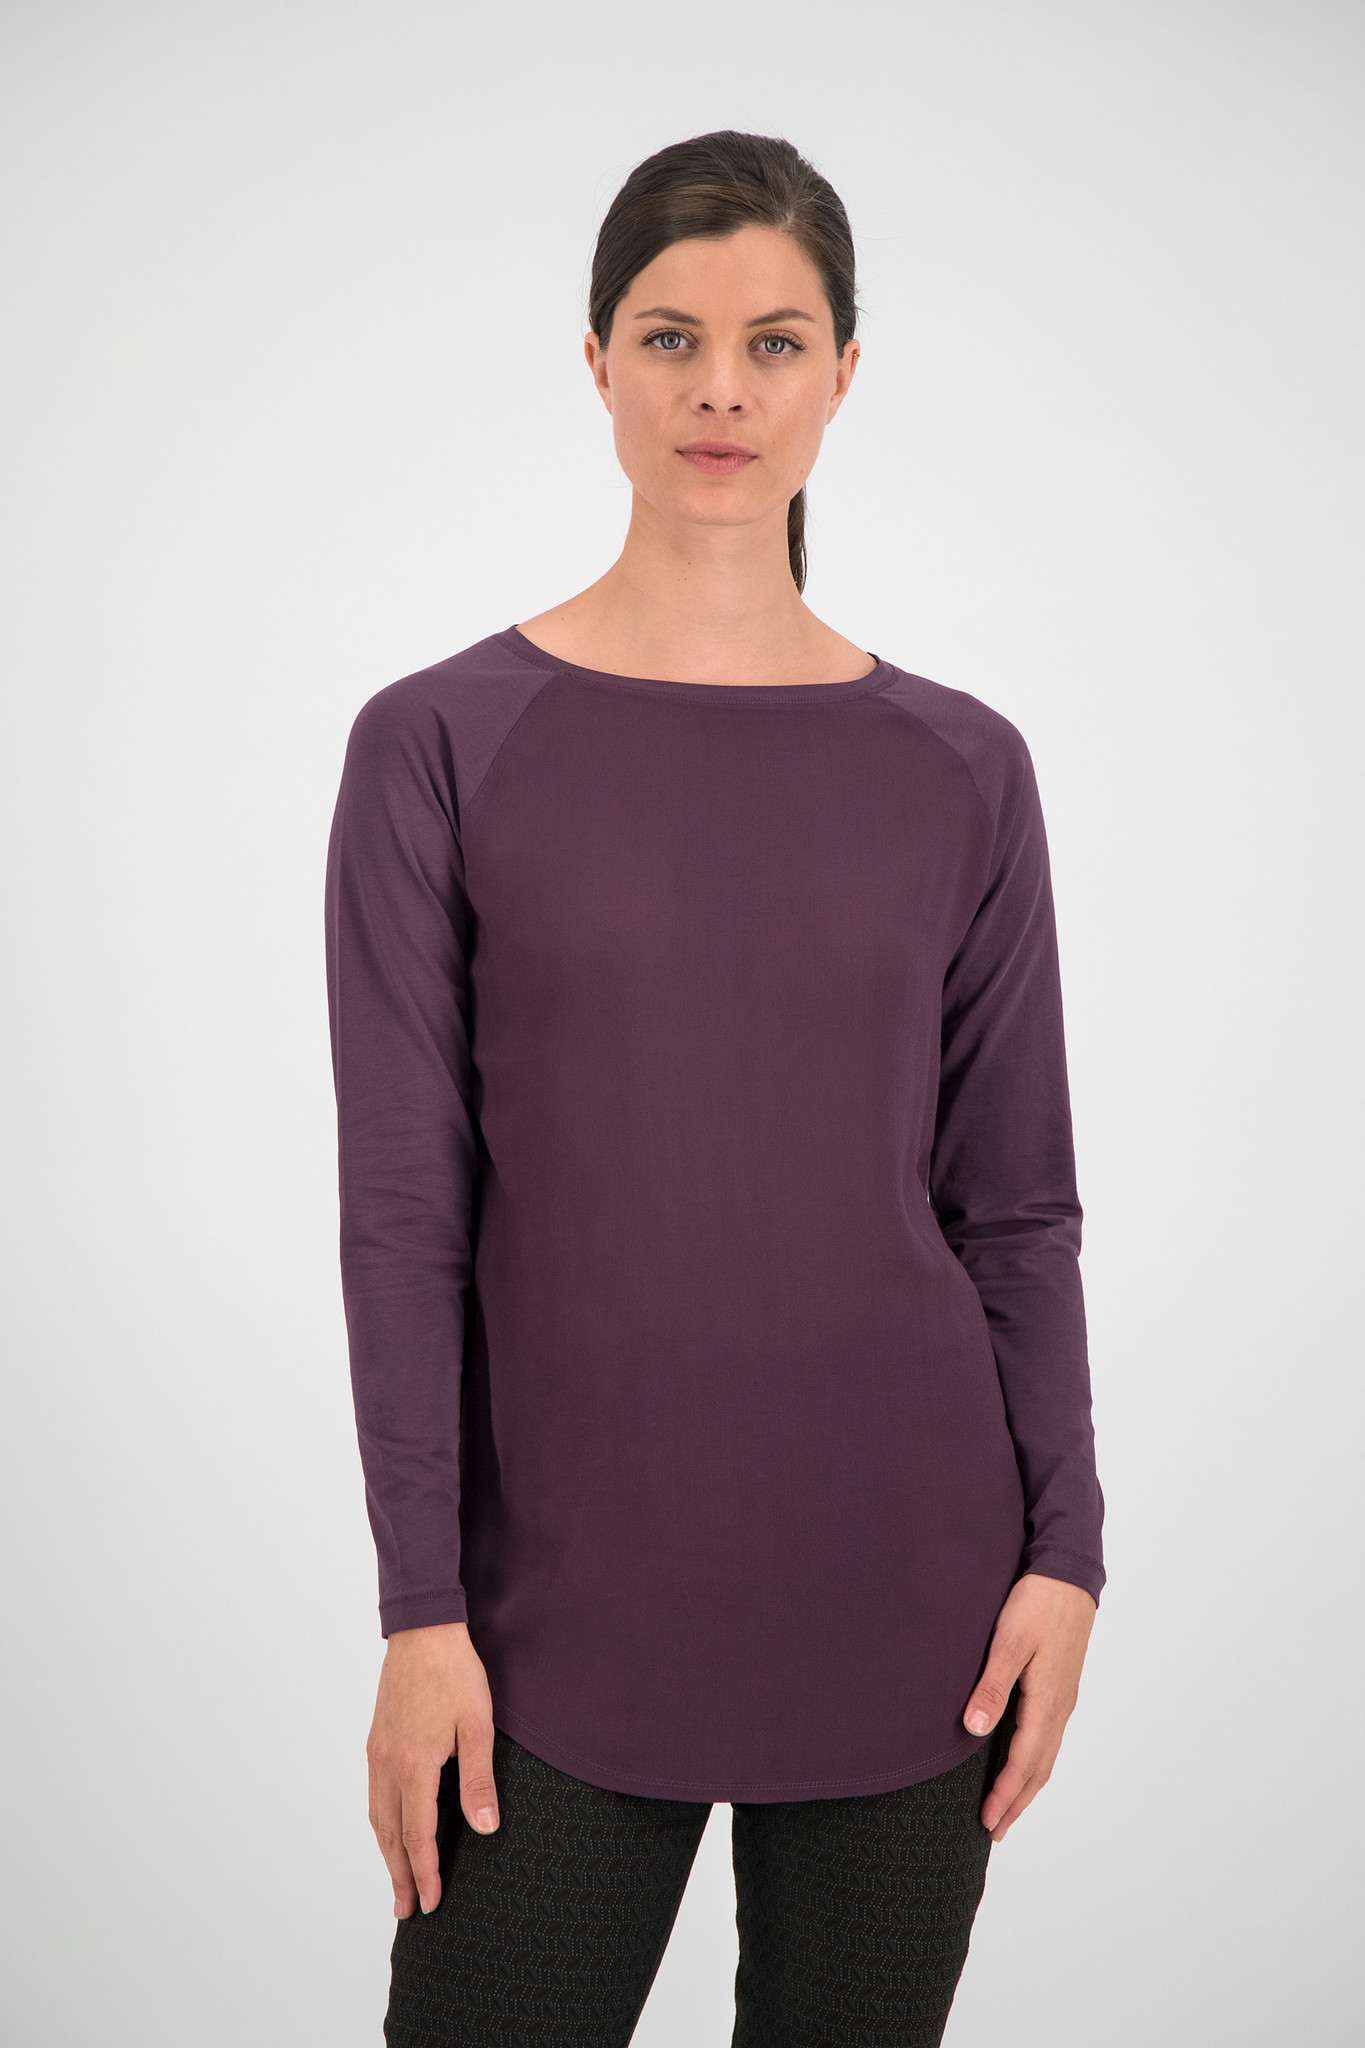 SYLVER Cotton Elastane Shirt Long Sleeve - Choco Wine